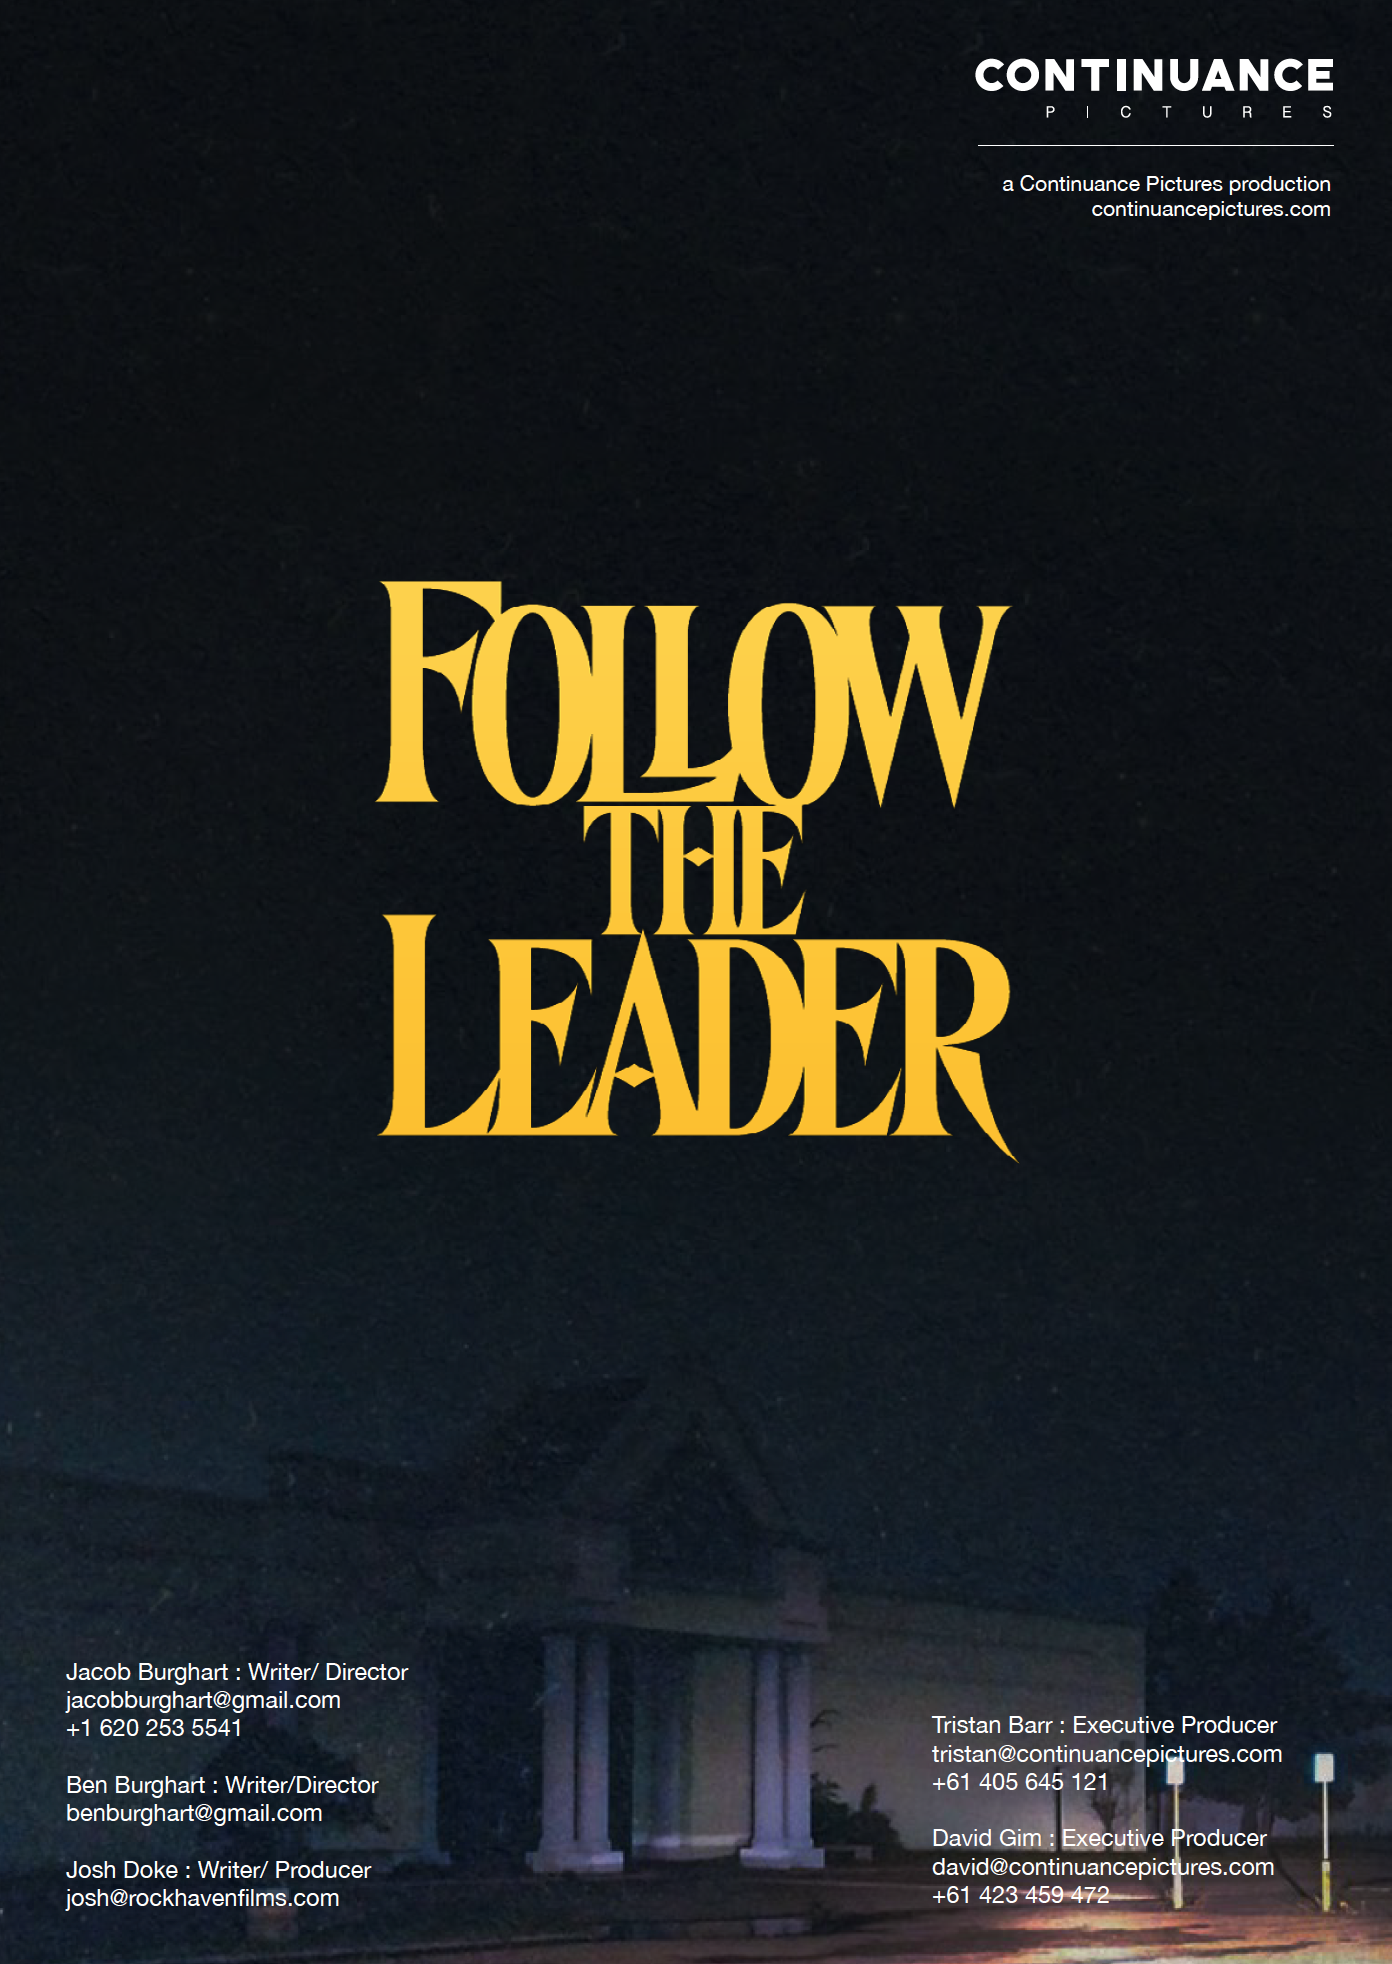 Follow the Leader - Continuance Pictures .png